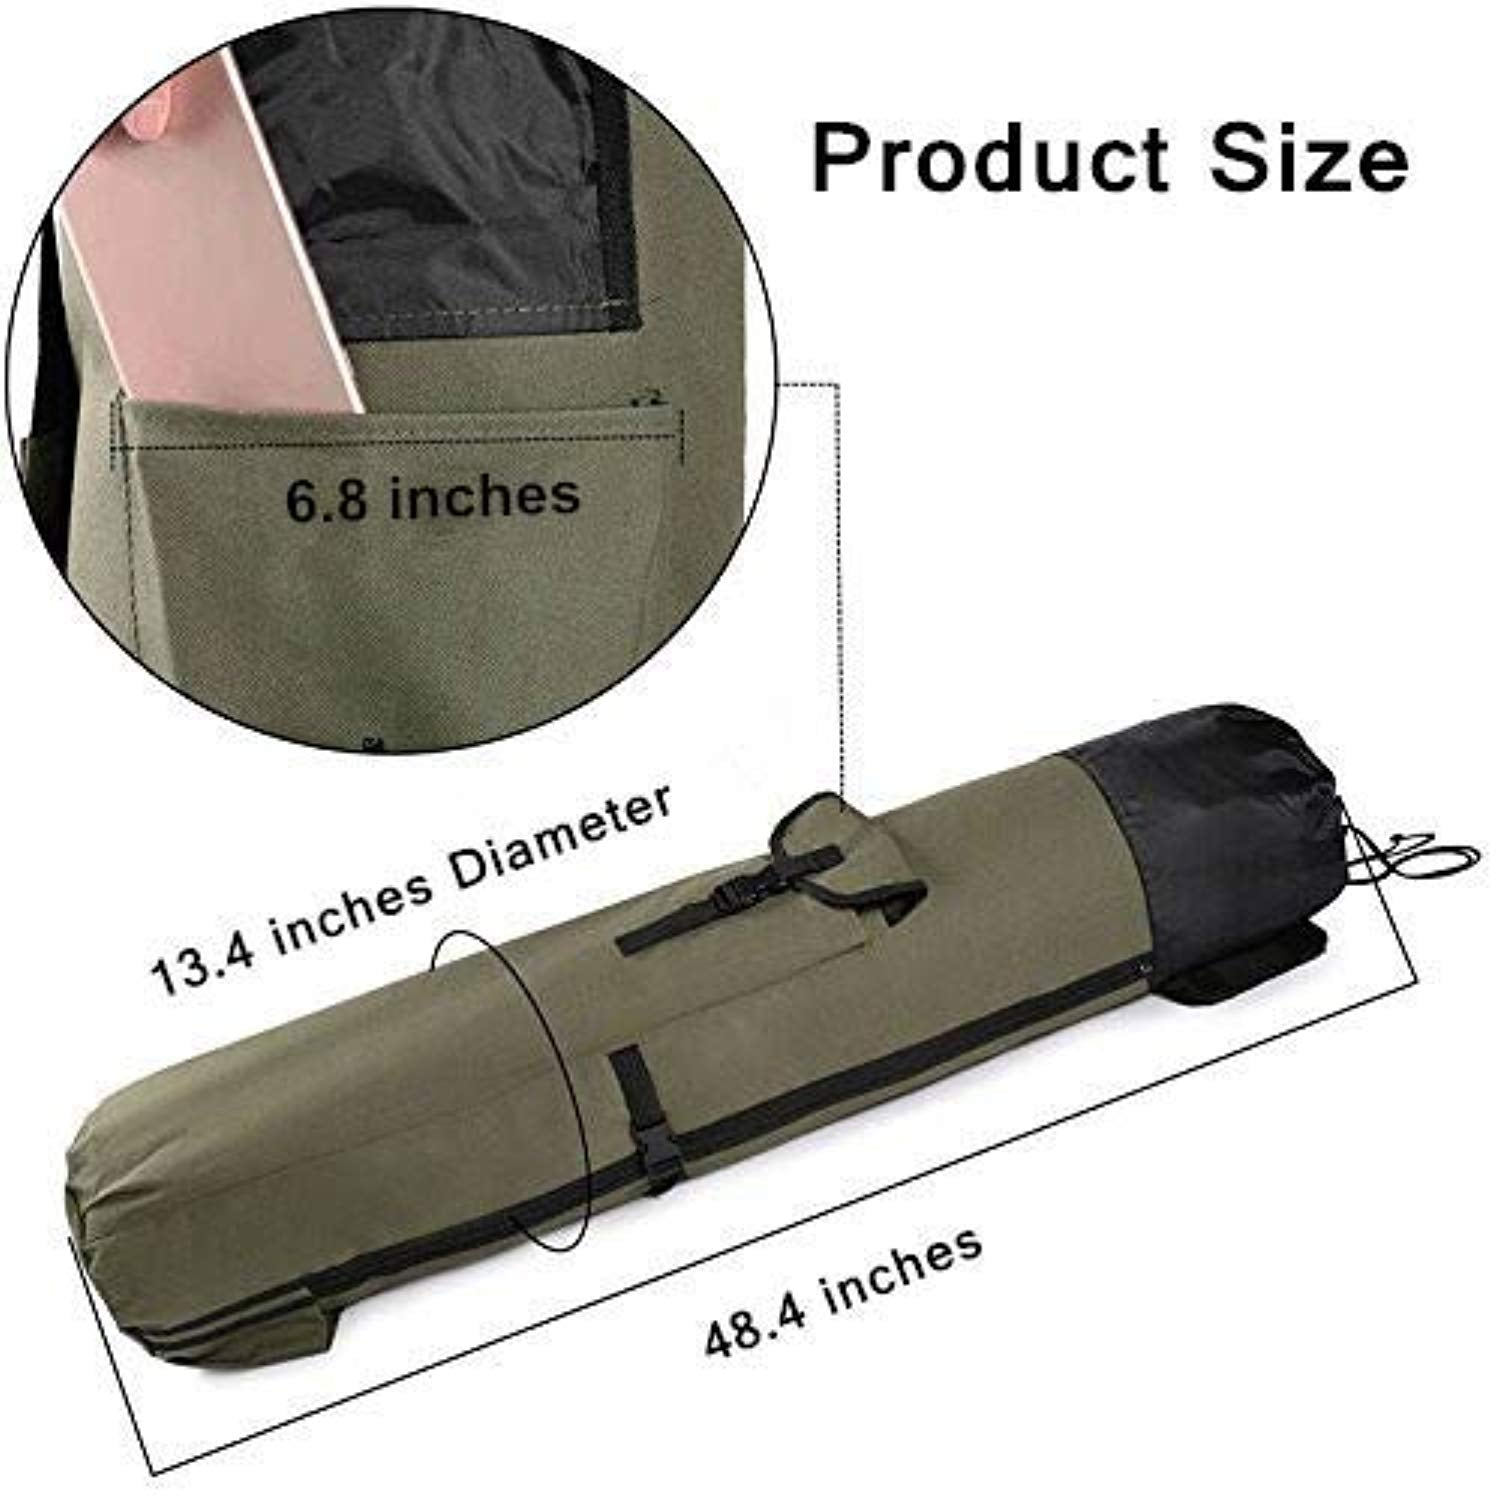 Ationgle Fishing Rod Organizer Bag -Rod & Reel Portable Fishing Pole Storage Bag with Adjustable Shoulder Strap Carrying Case - Holds 5 Poles & Tackle Heavy-Duty, Water-Resistant (ArmyGreen)